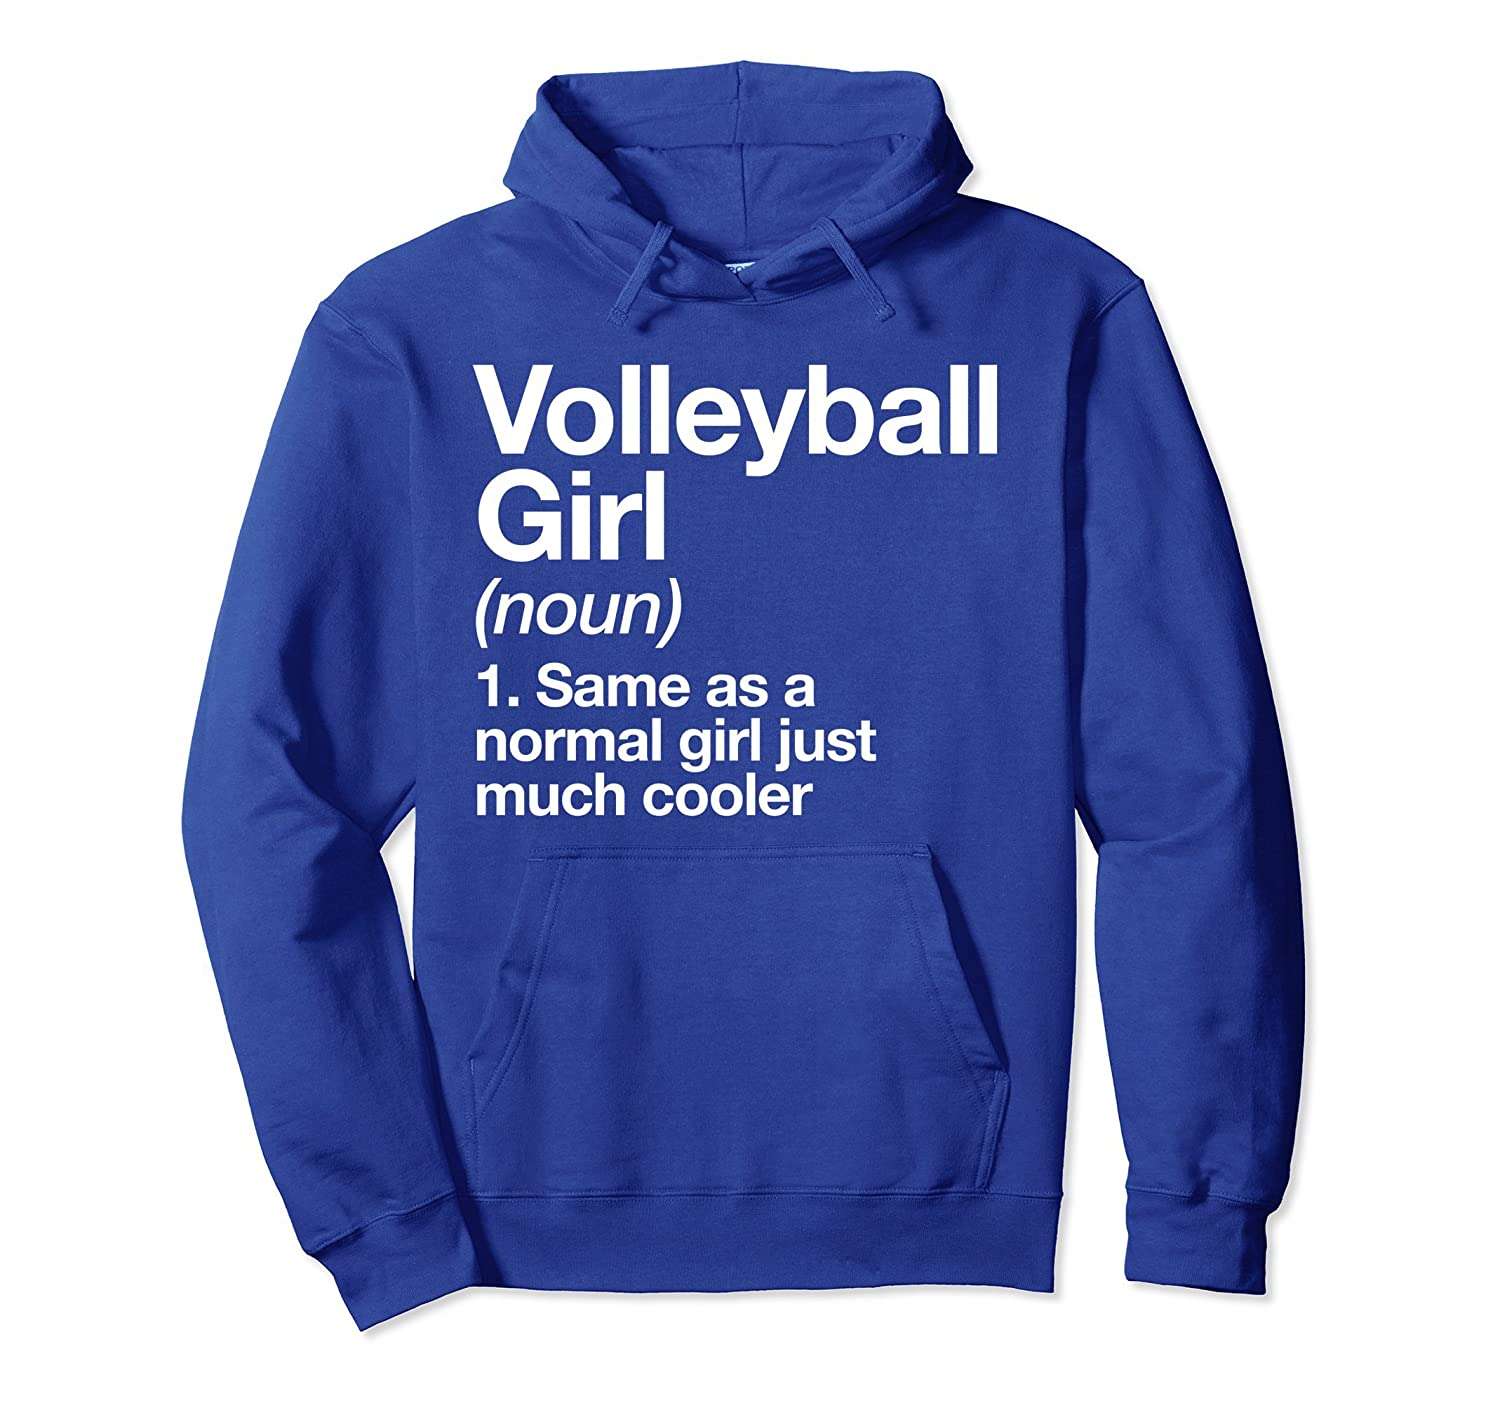 Volleyball Girl Definition Hoodie Funny Sports Pullover-ln